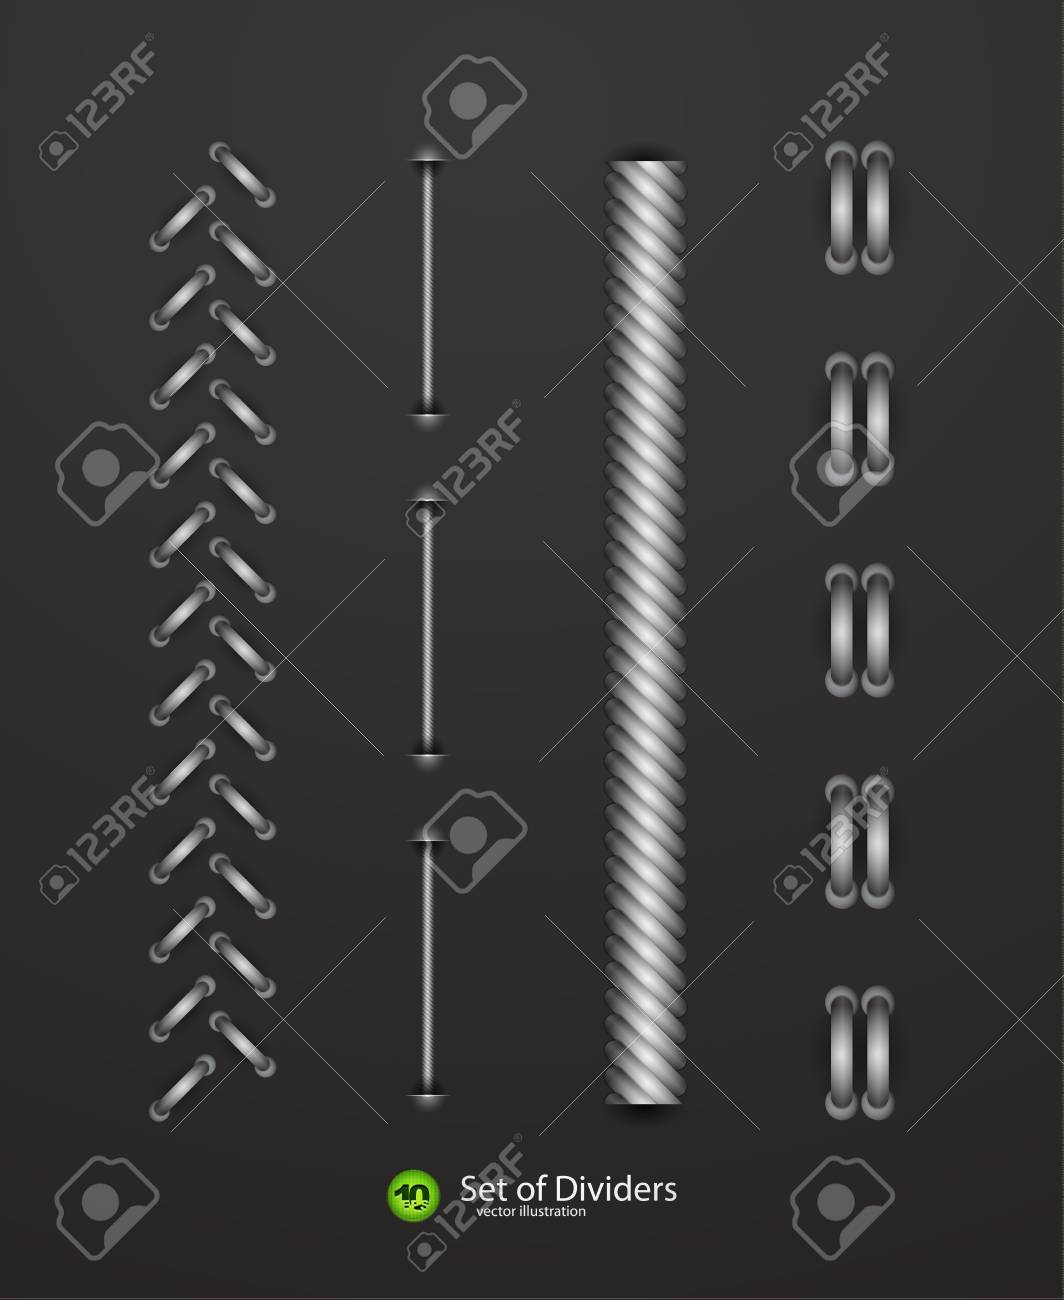 dividers Stock Vector - 12493849